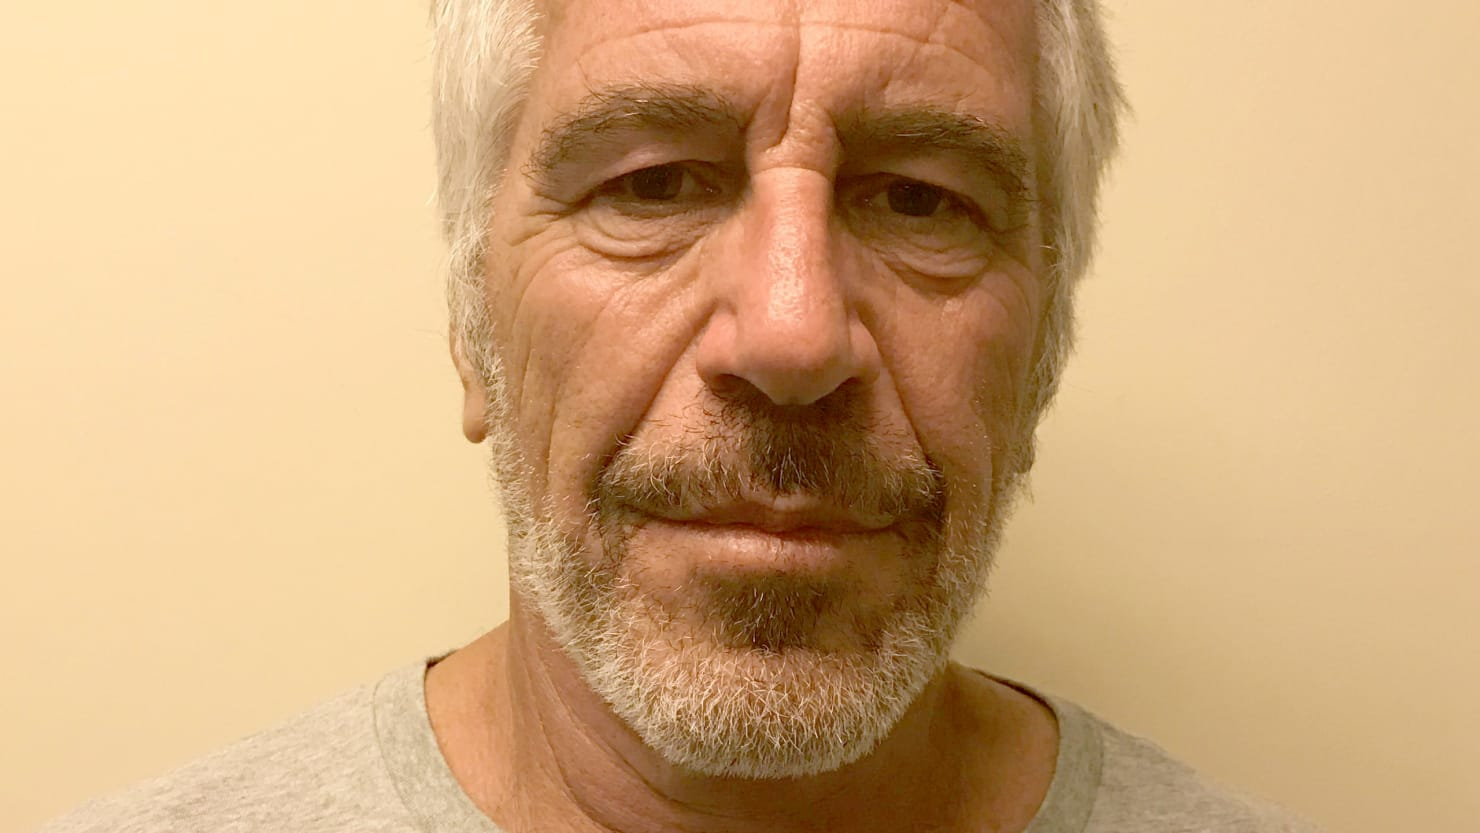 Jeffrey Epstein gave dirty money to cops, but also Harvard, Ohio State, other science & tech institutions